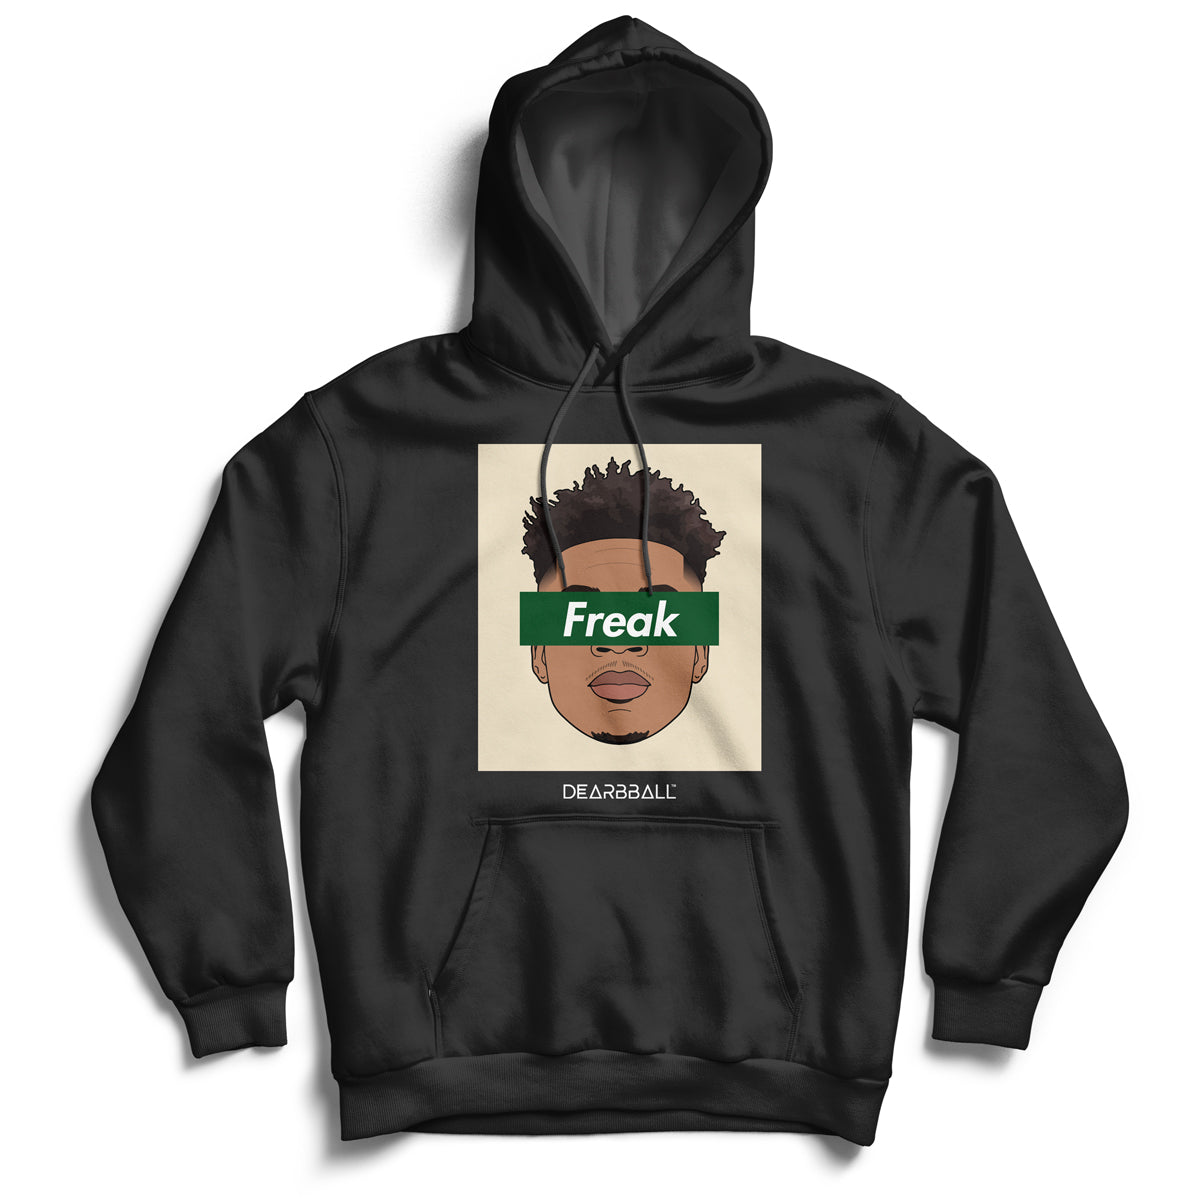 Giannis_Antetokounmpo_hoodie_FREAK_MILWAUKEE_COLORS_Milwaukee_Bucks_dearbball_black